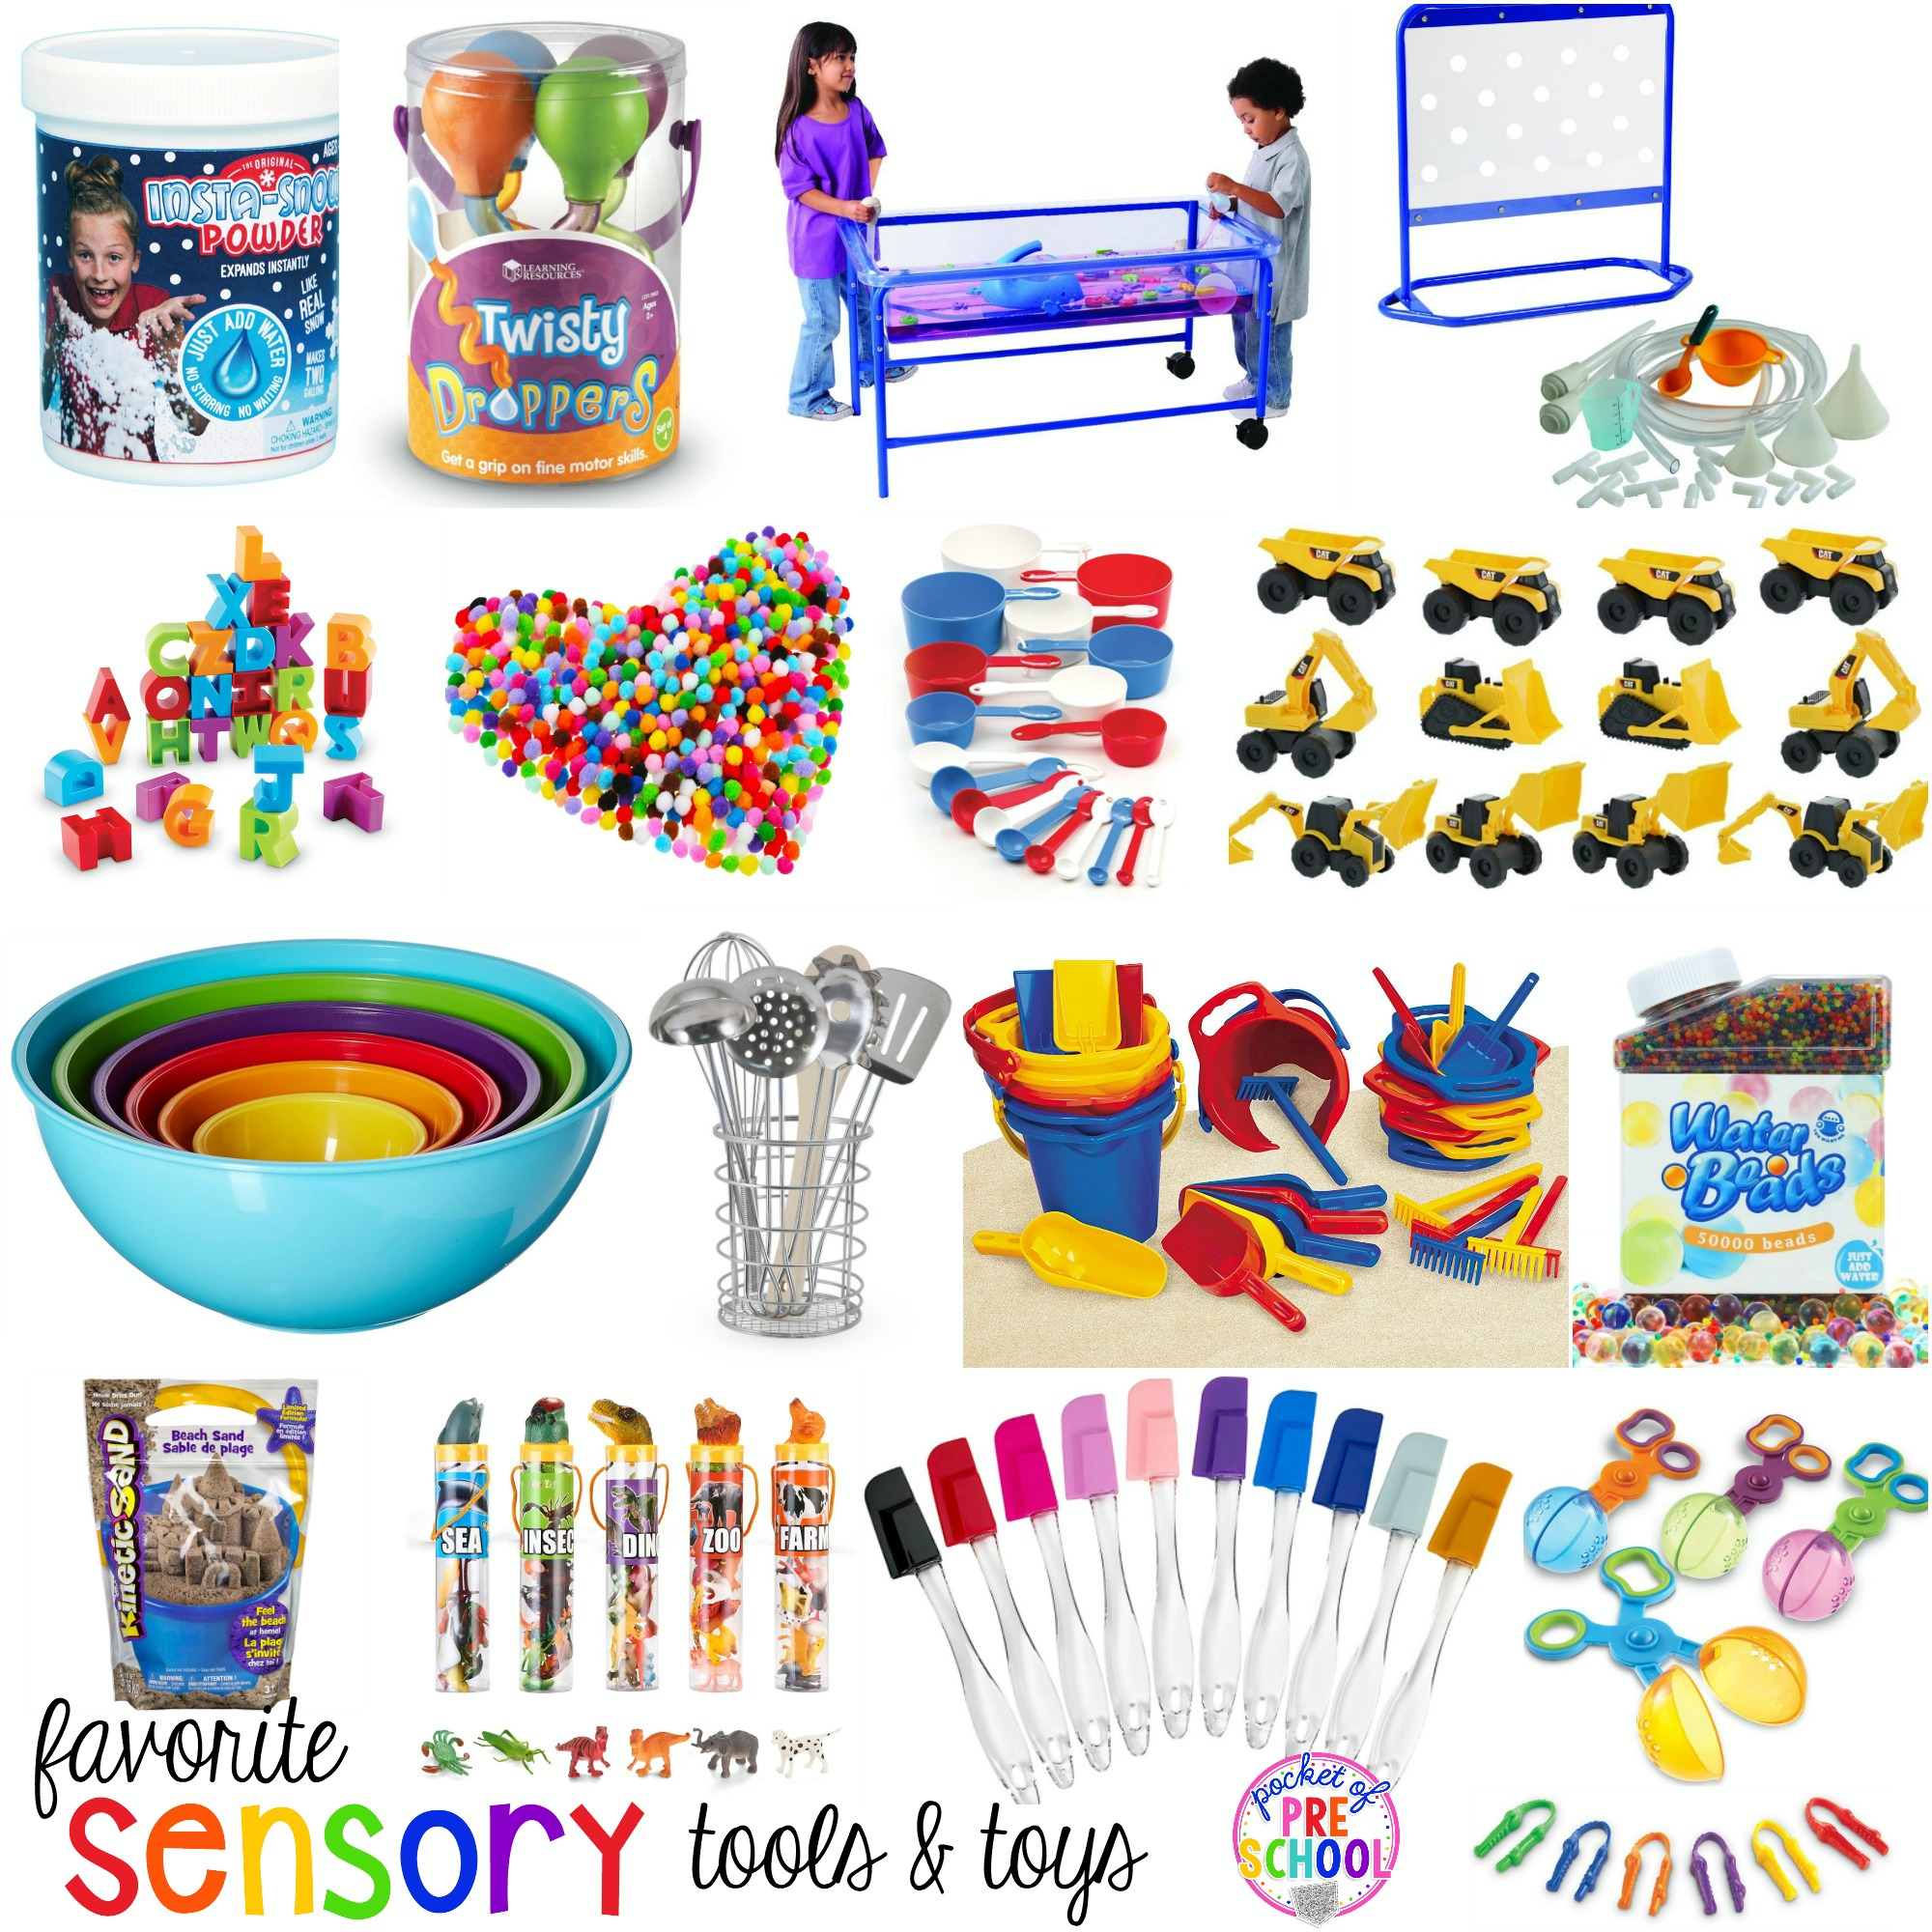 Toys For Kindergarten : Favorite sensory table tools and toys pocket of preschool